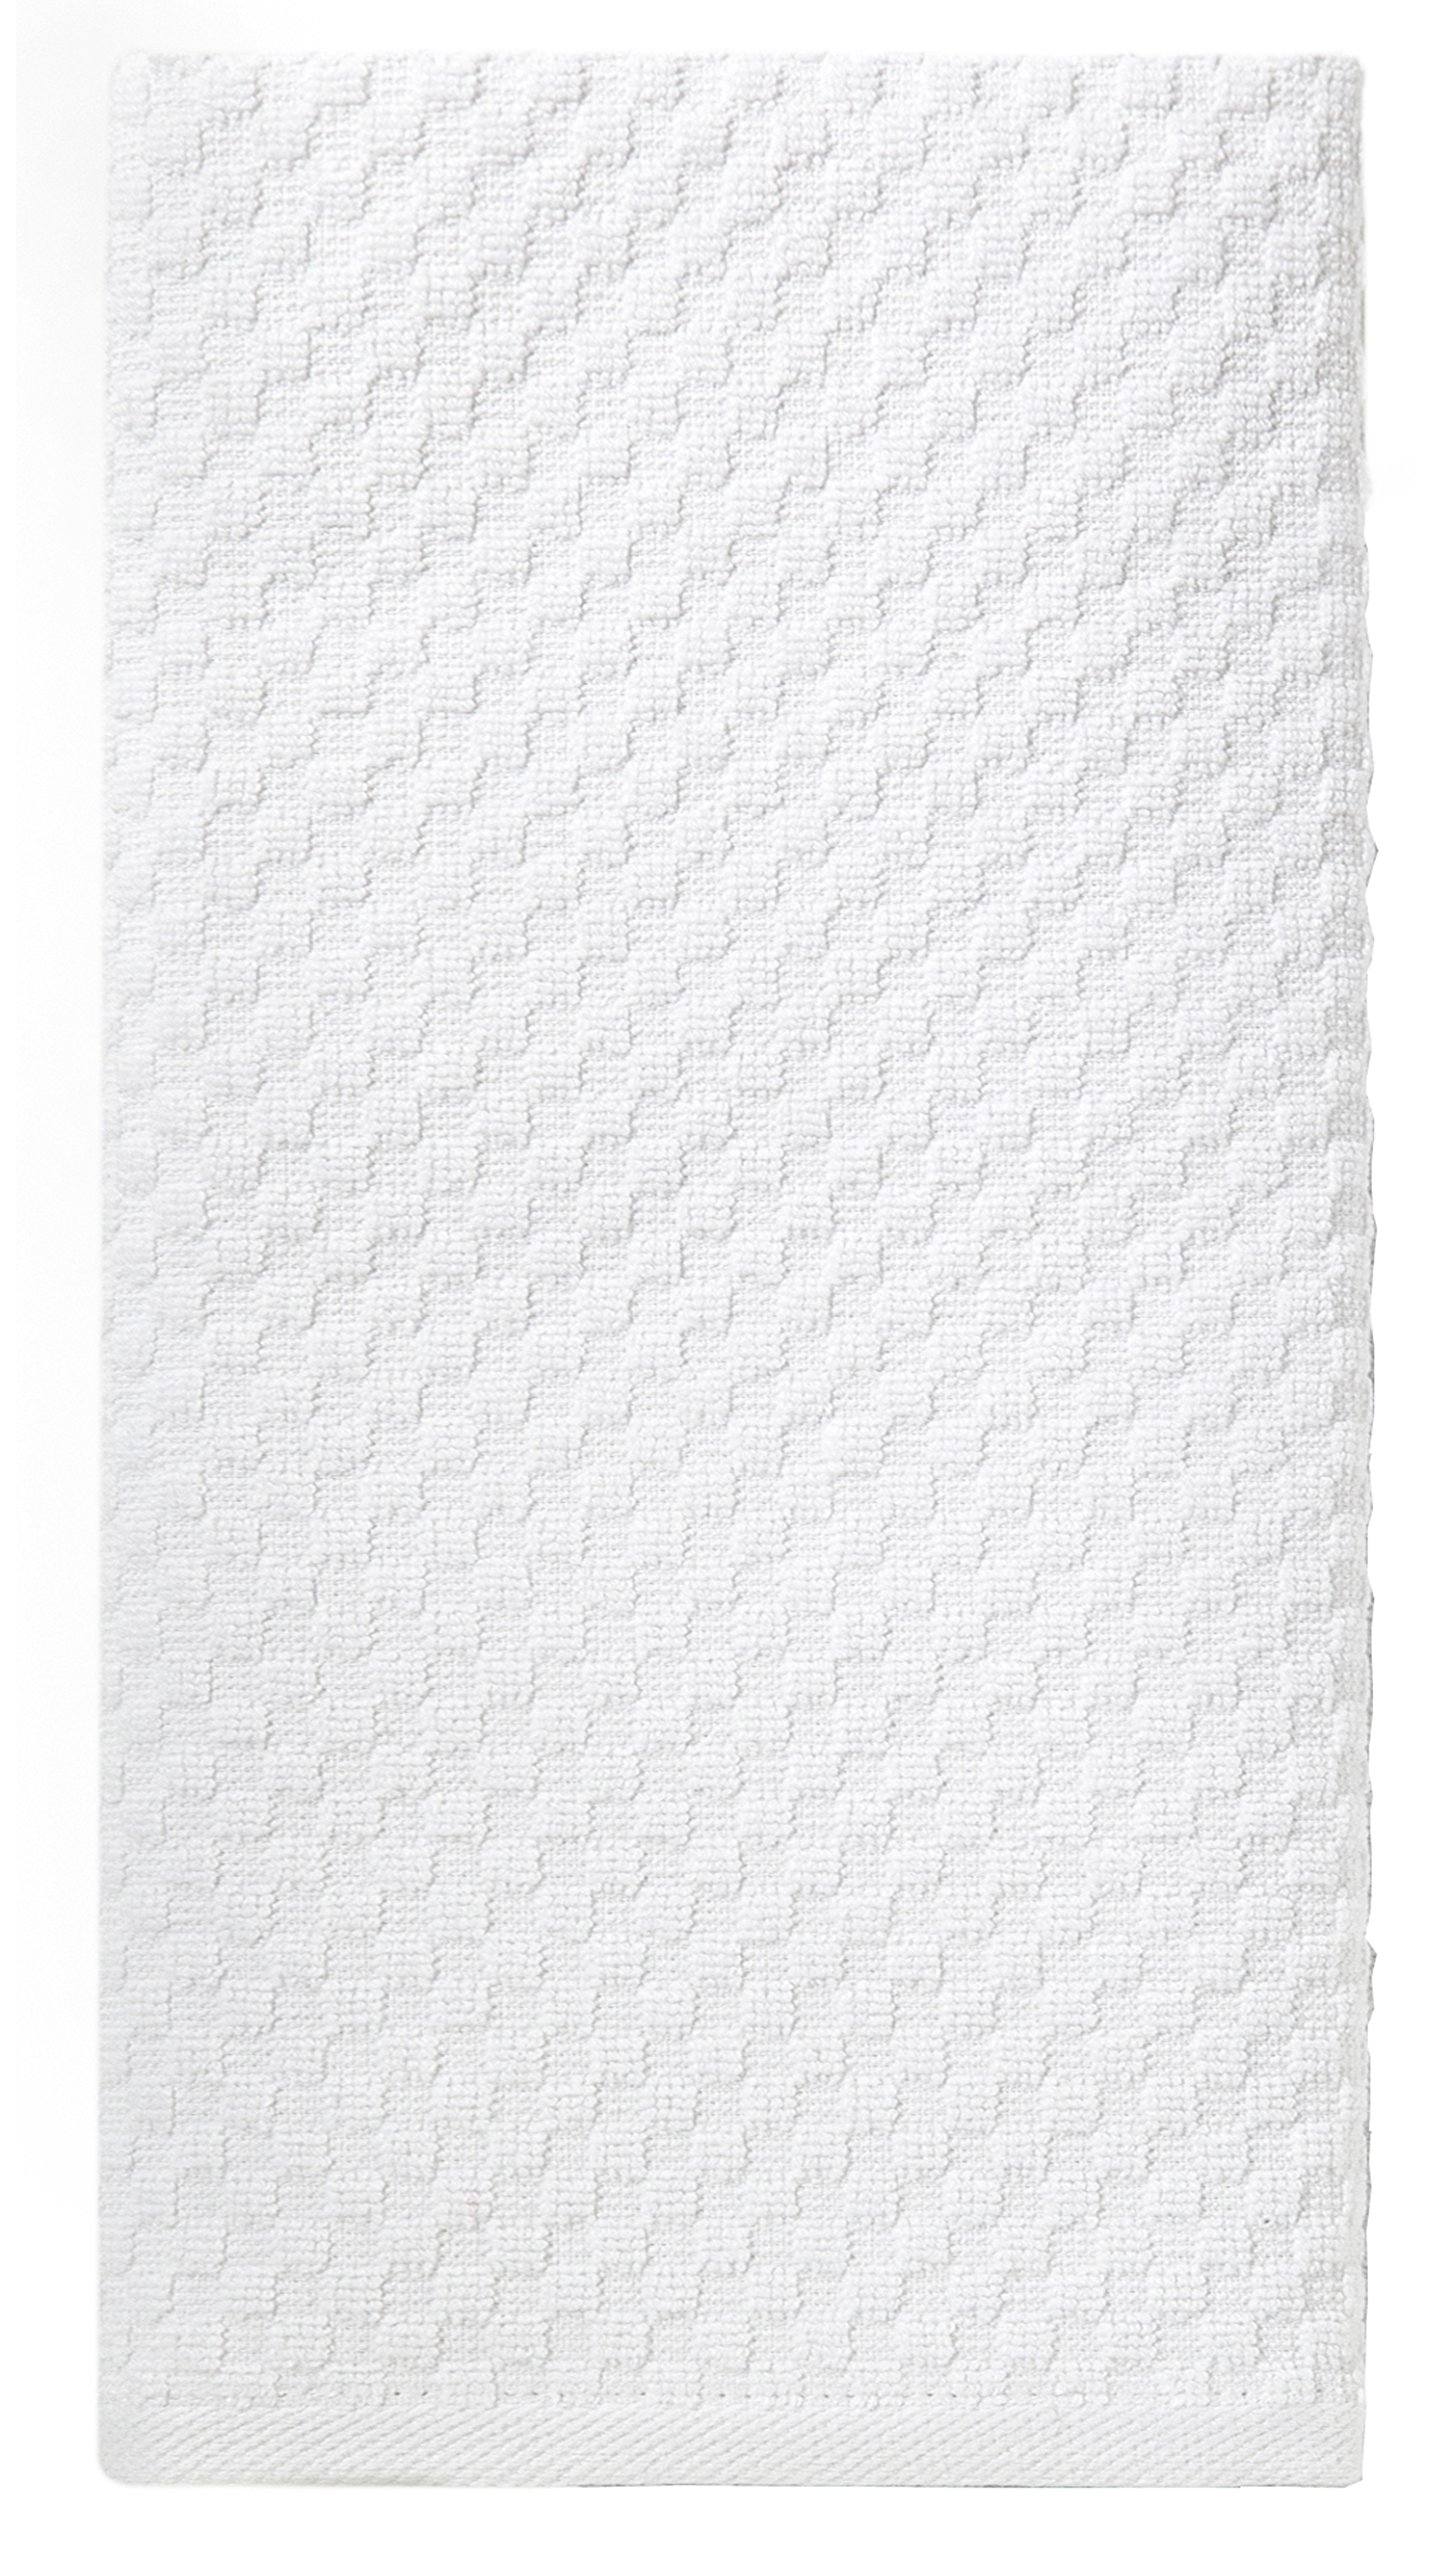 Cotton Craft - 12 Pack - Euro Cafe Waffle Weave Terry Kitchen Towels - 16x28 Inches -White - 400 GSM quality - 100% Ringspun 2 Ply Cotton - Highly Absorbent Low Lint - Multi Purpose by Cotton Craft